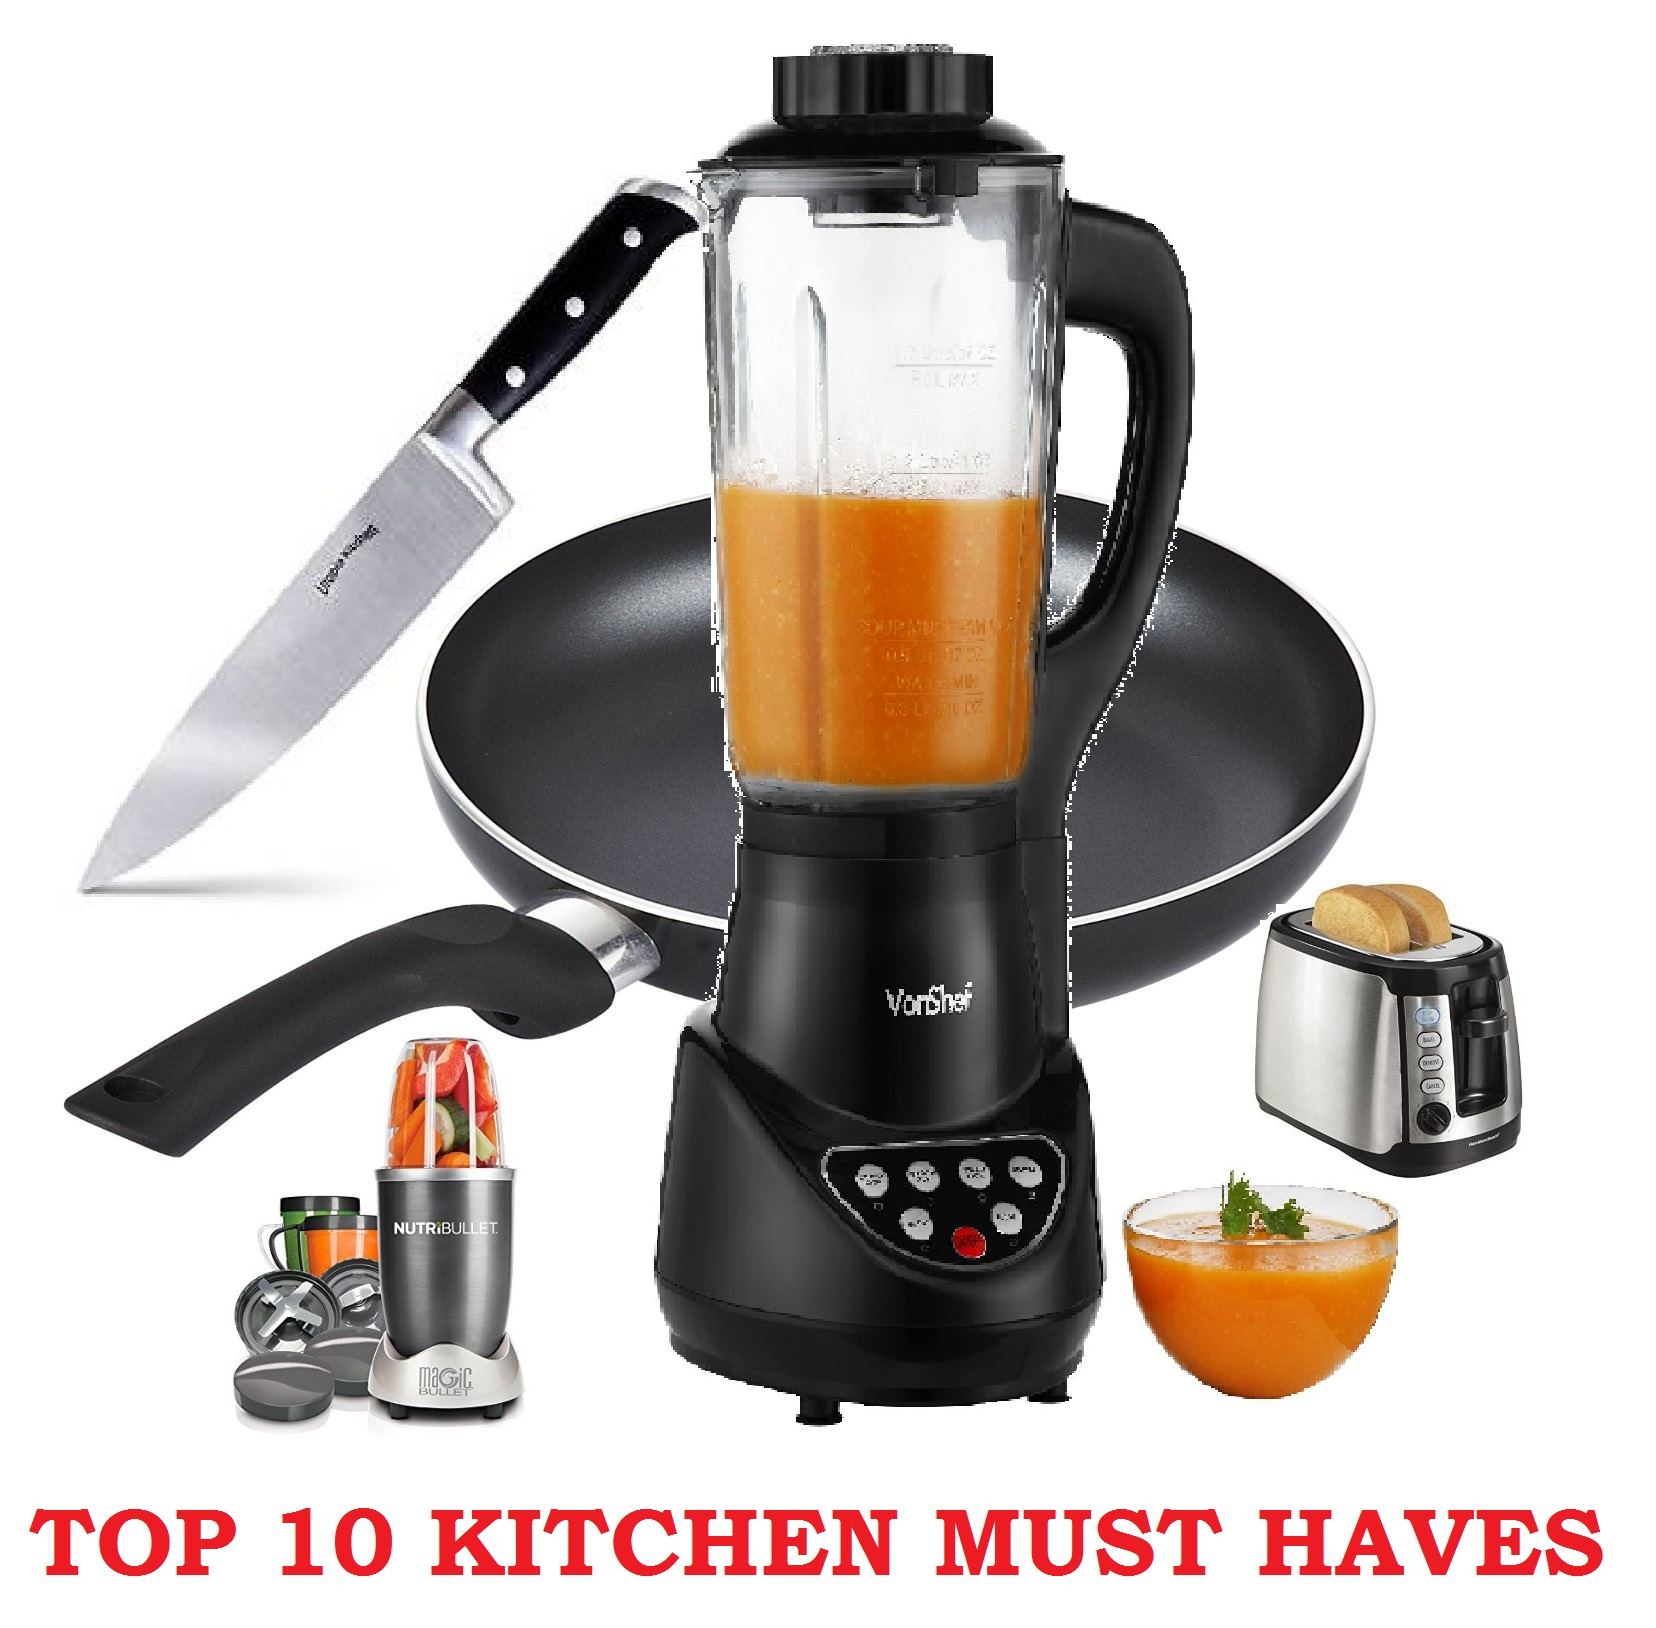 Top 10 Kitchen Must Haves - [MUST HAVE items in your kitchen]